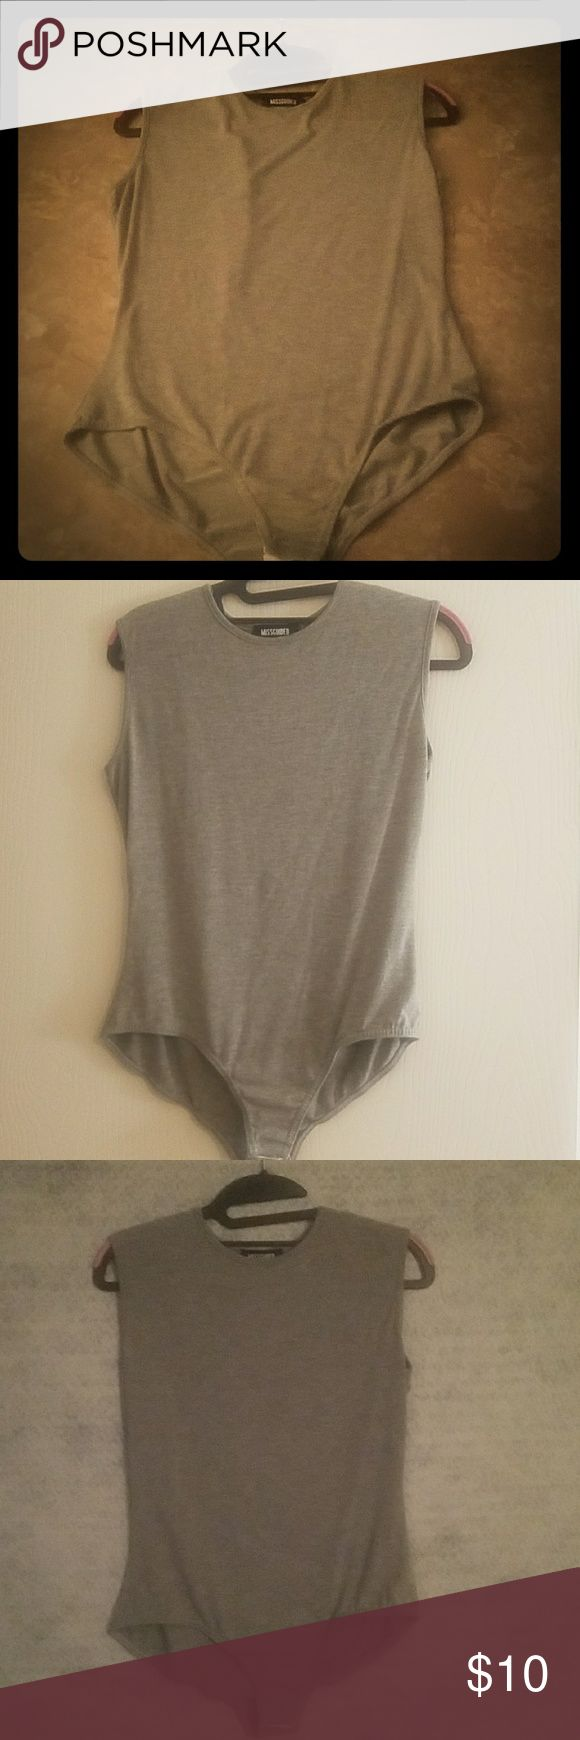 Sz 12 misguided bodysuit Soft grey size 12 body suit. Goes great with jeans misguided Tops